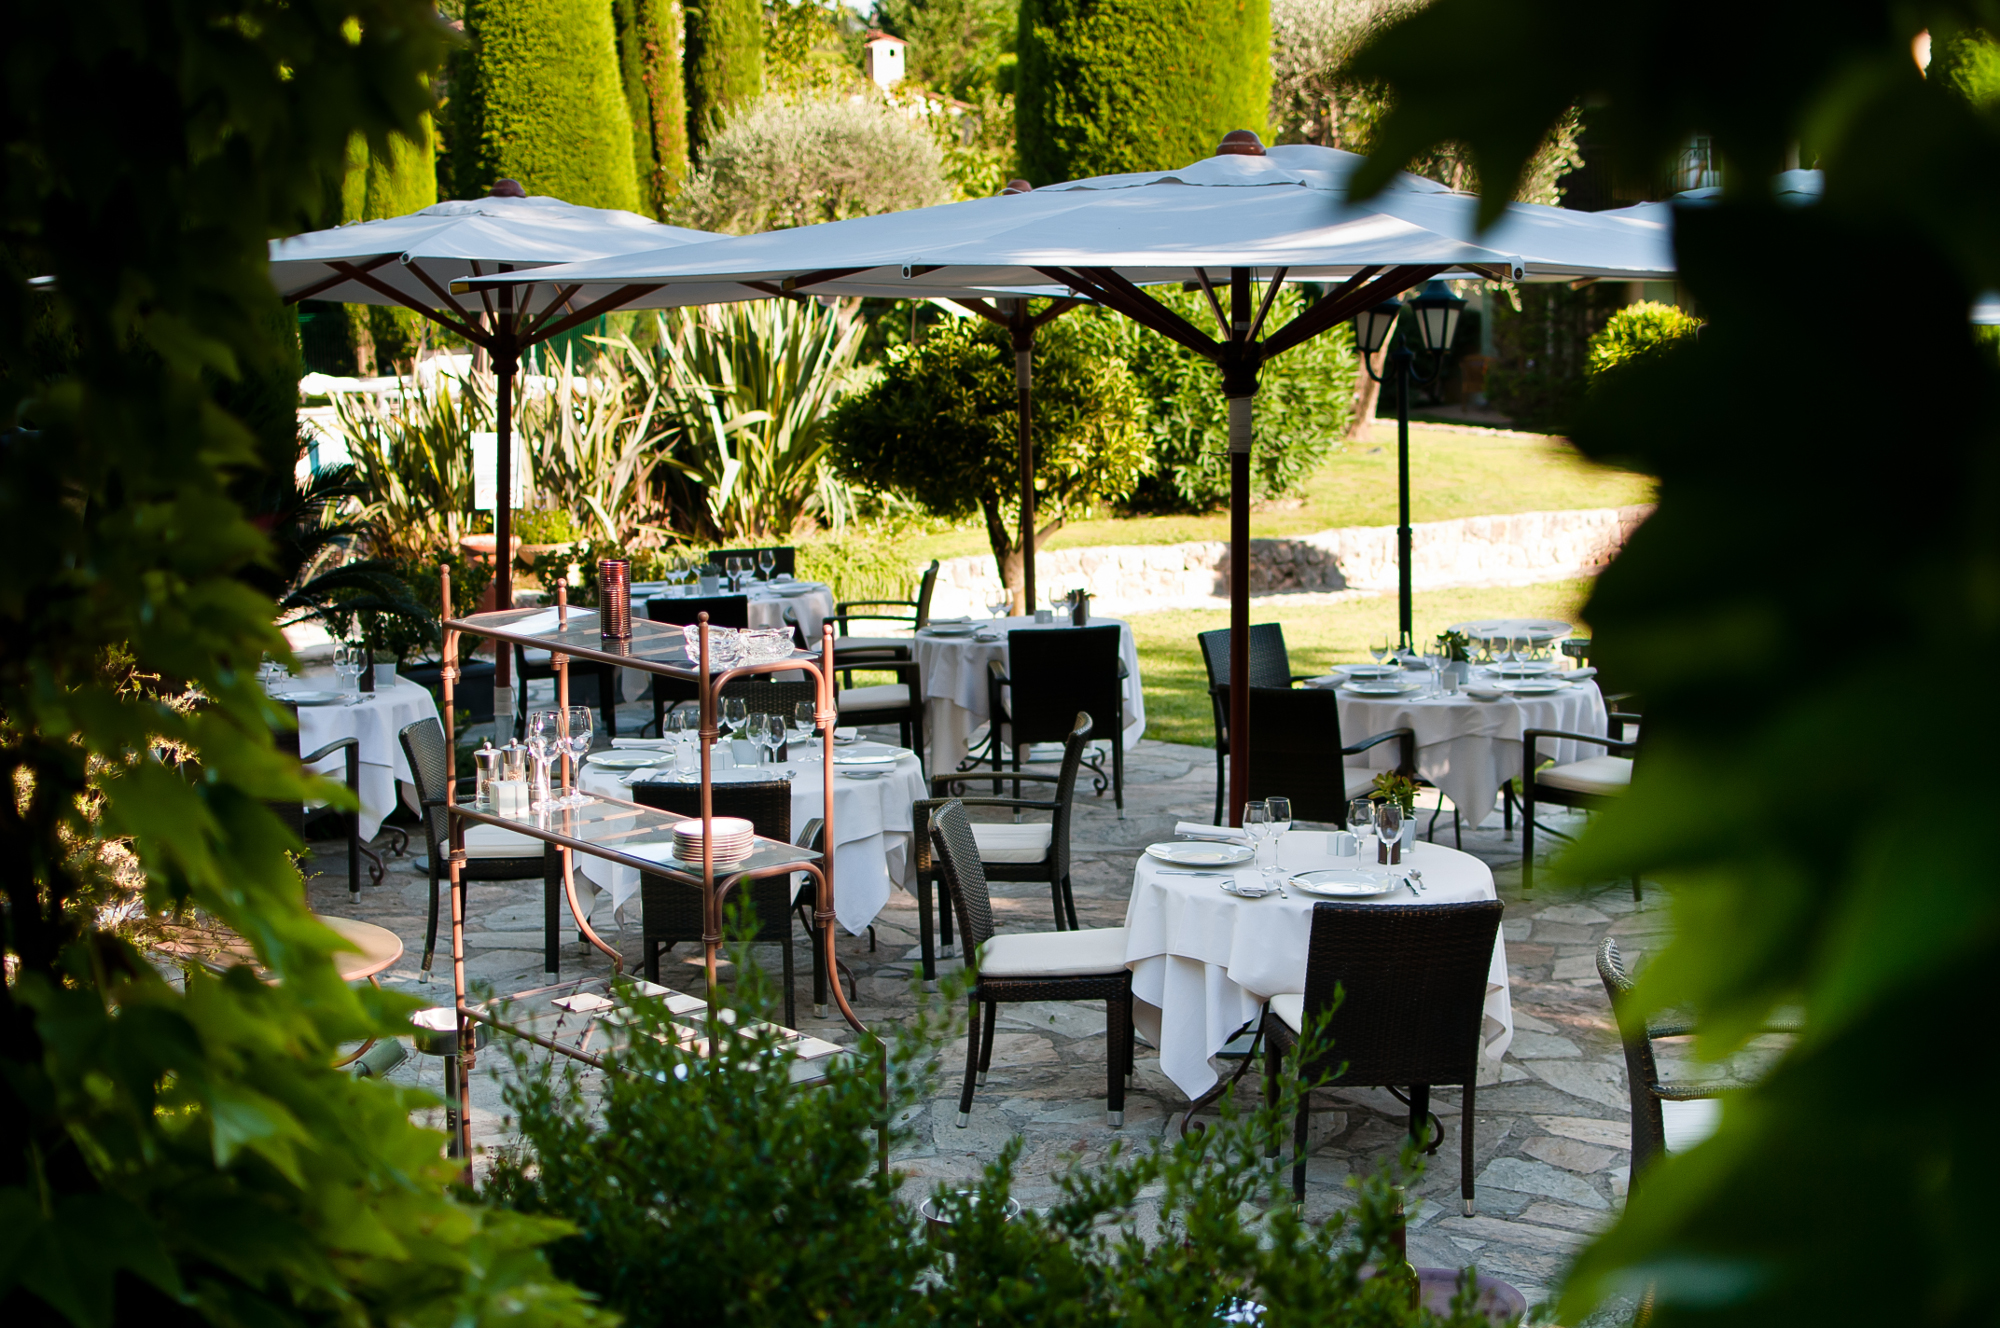 Restaurant le jardin bar room service menu de l for Restaurant le jardin morat